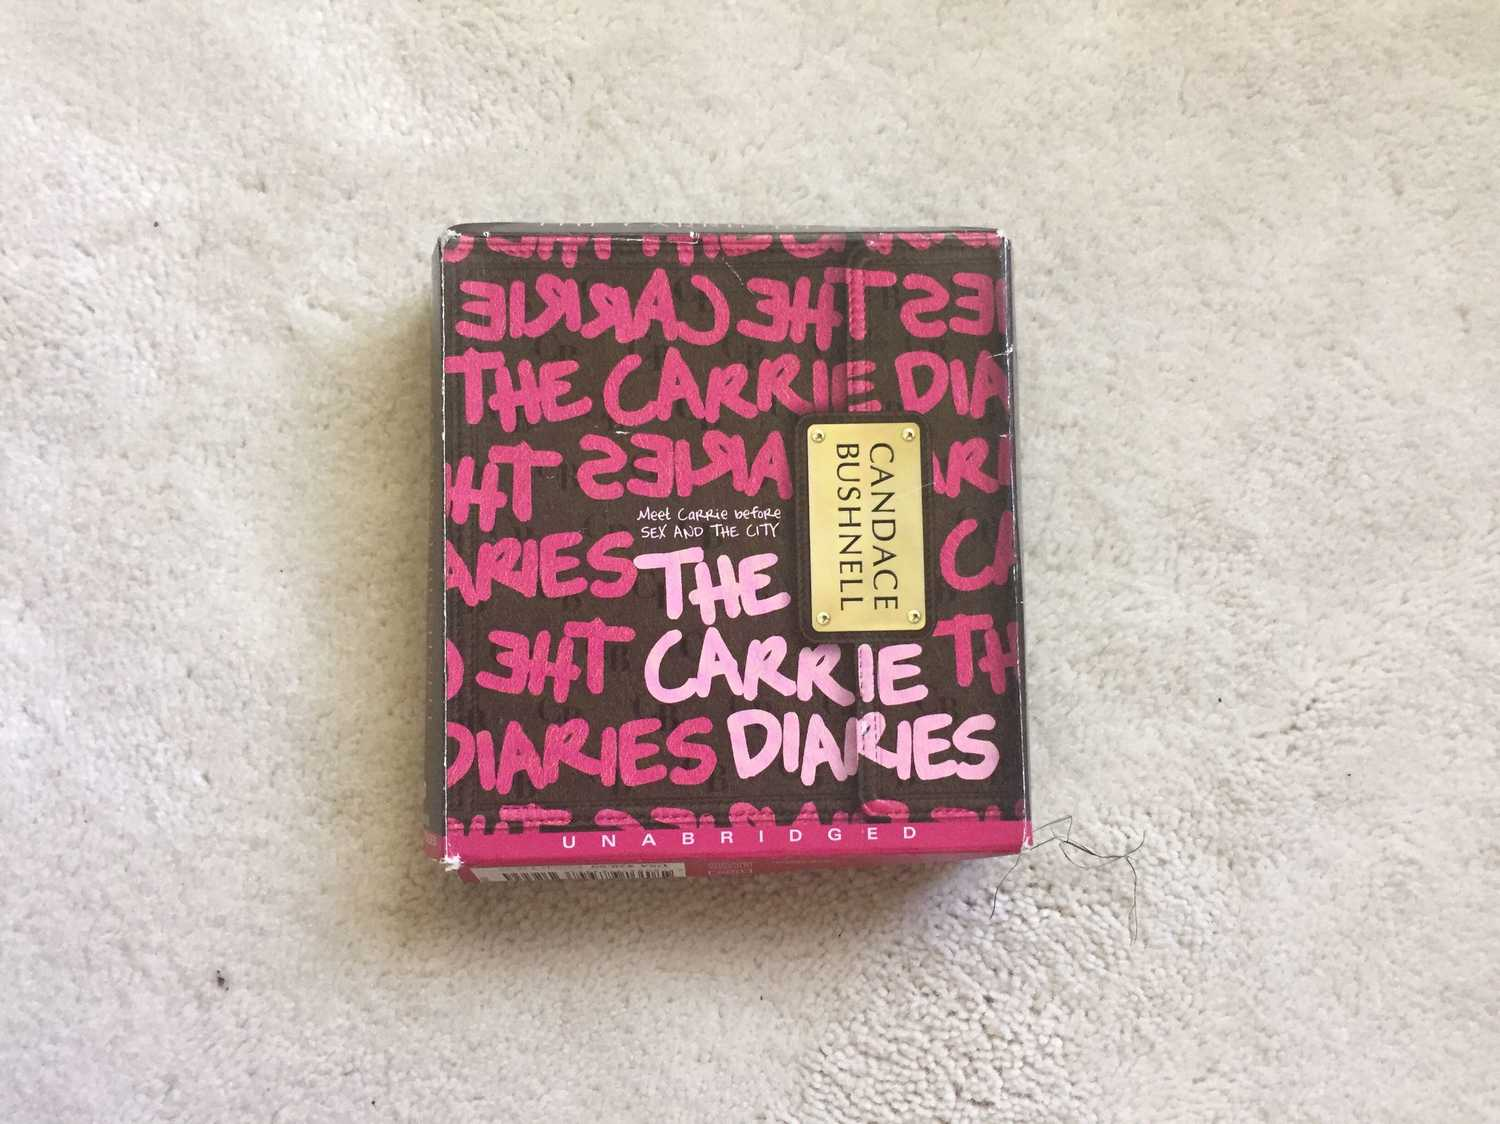 The Carrie Diaries audio book